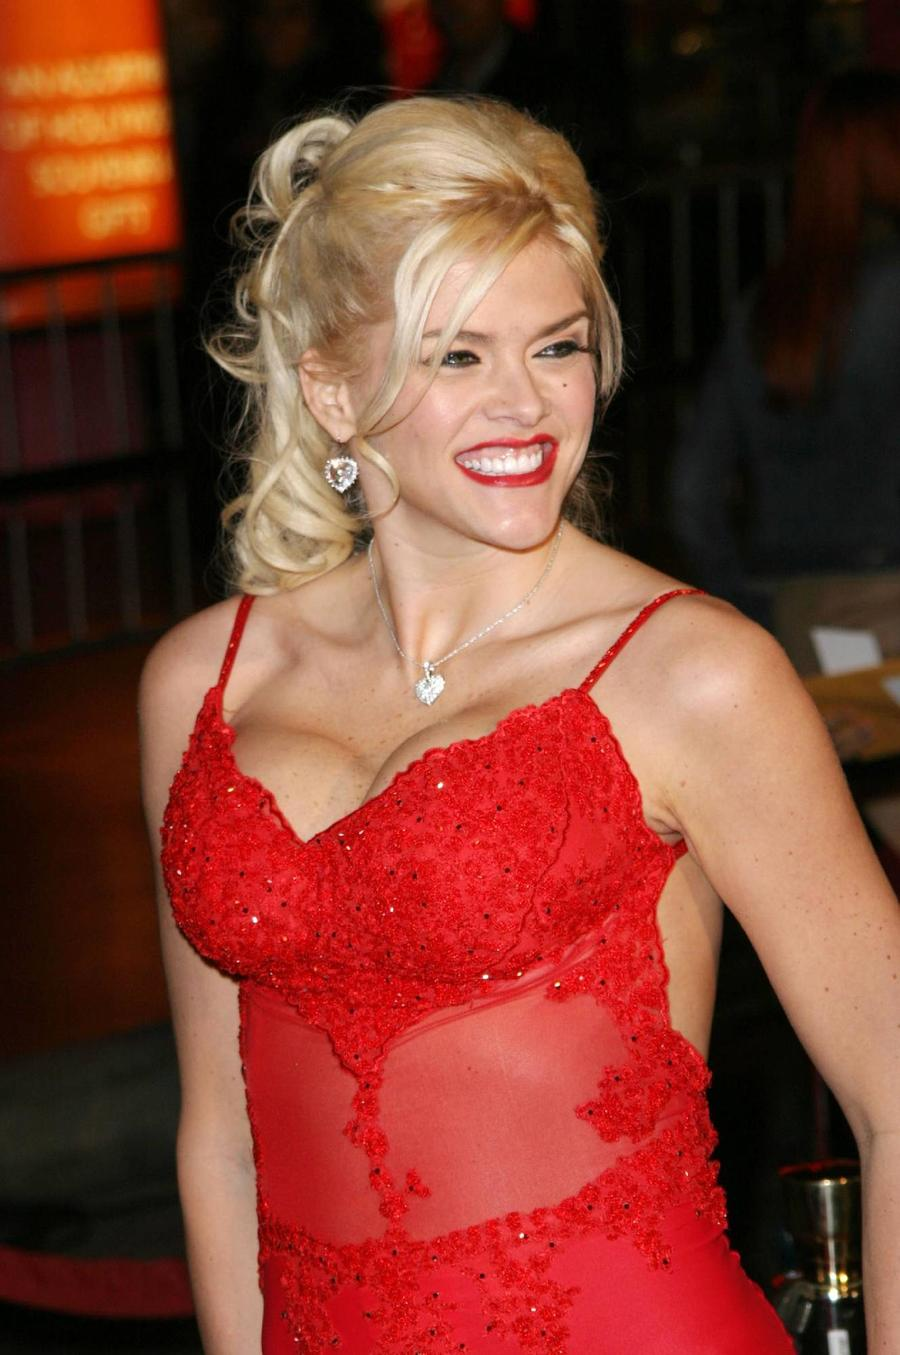 Anna Nicole Smith's Ex Convinced She Died Of A Broken Heart